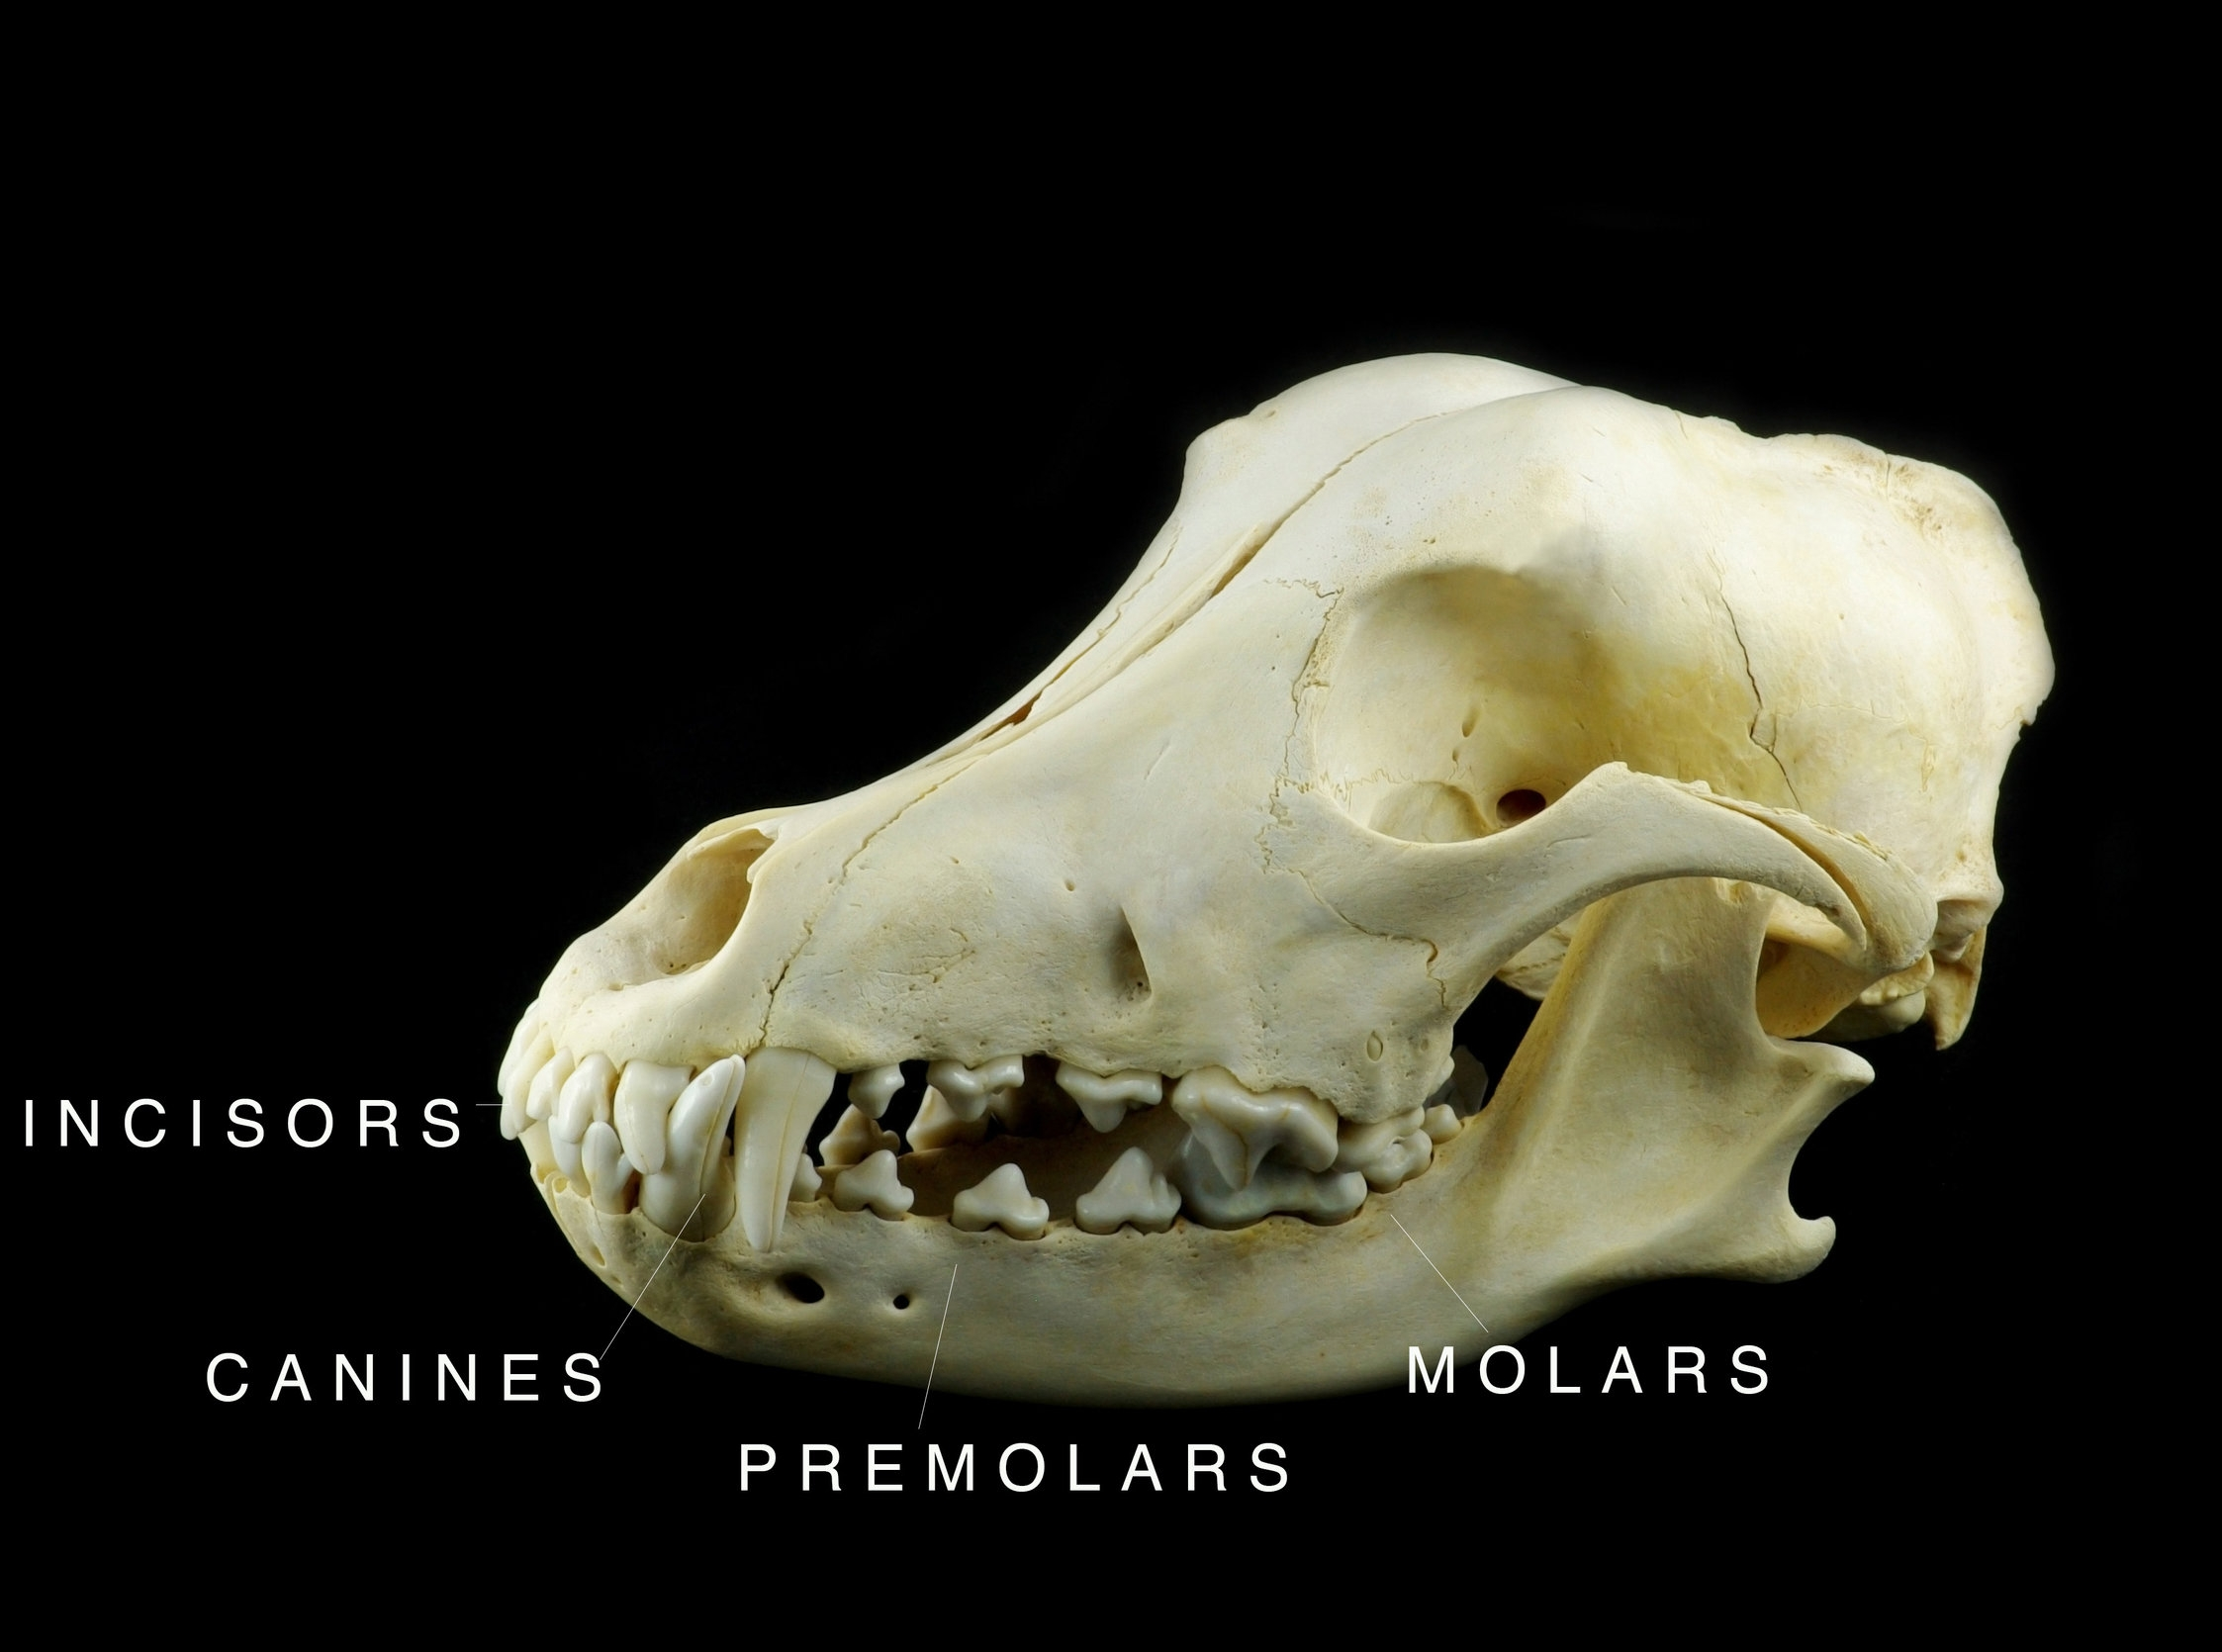 Dog skull with teeth – incisors, canines, premolars and molars